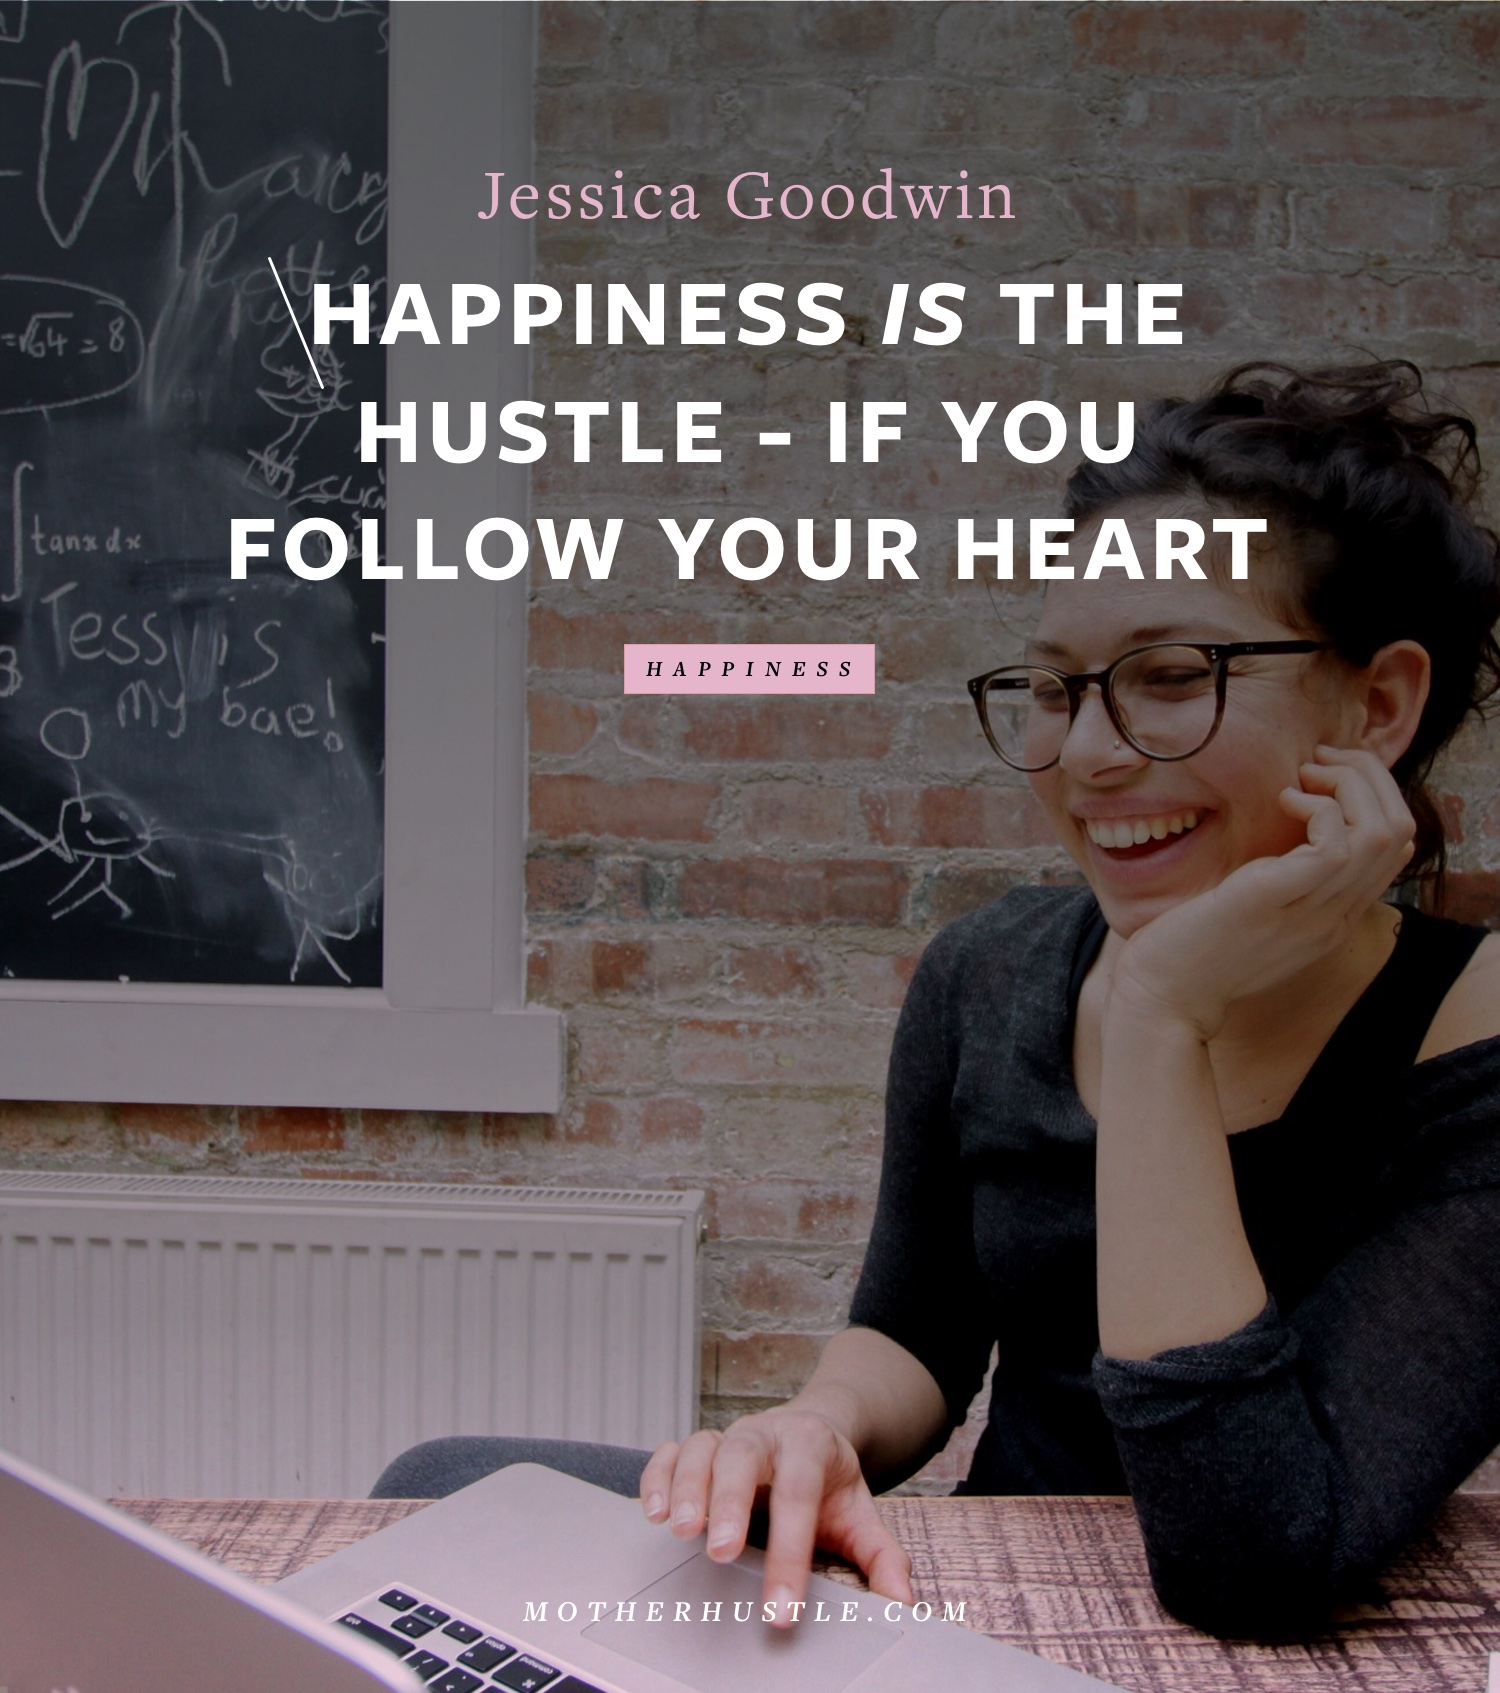 Happiness Is The Hustle -- If You Follow Your Heart - BY Jessica Goodwin for MotherHustle